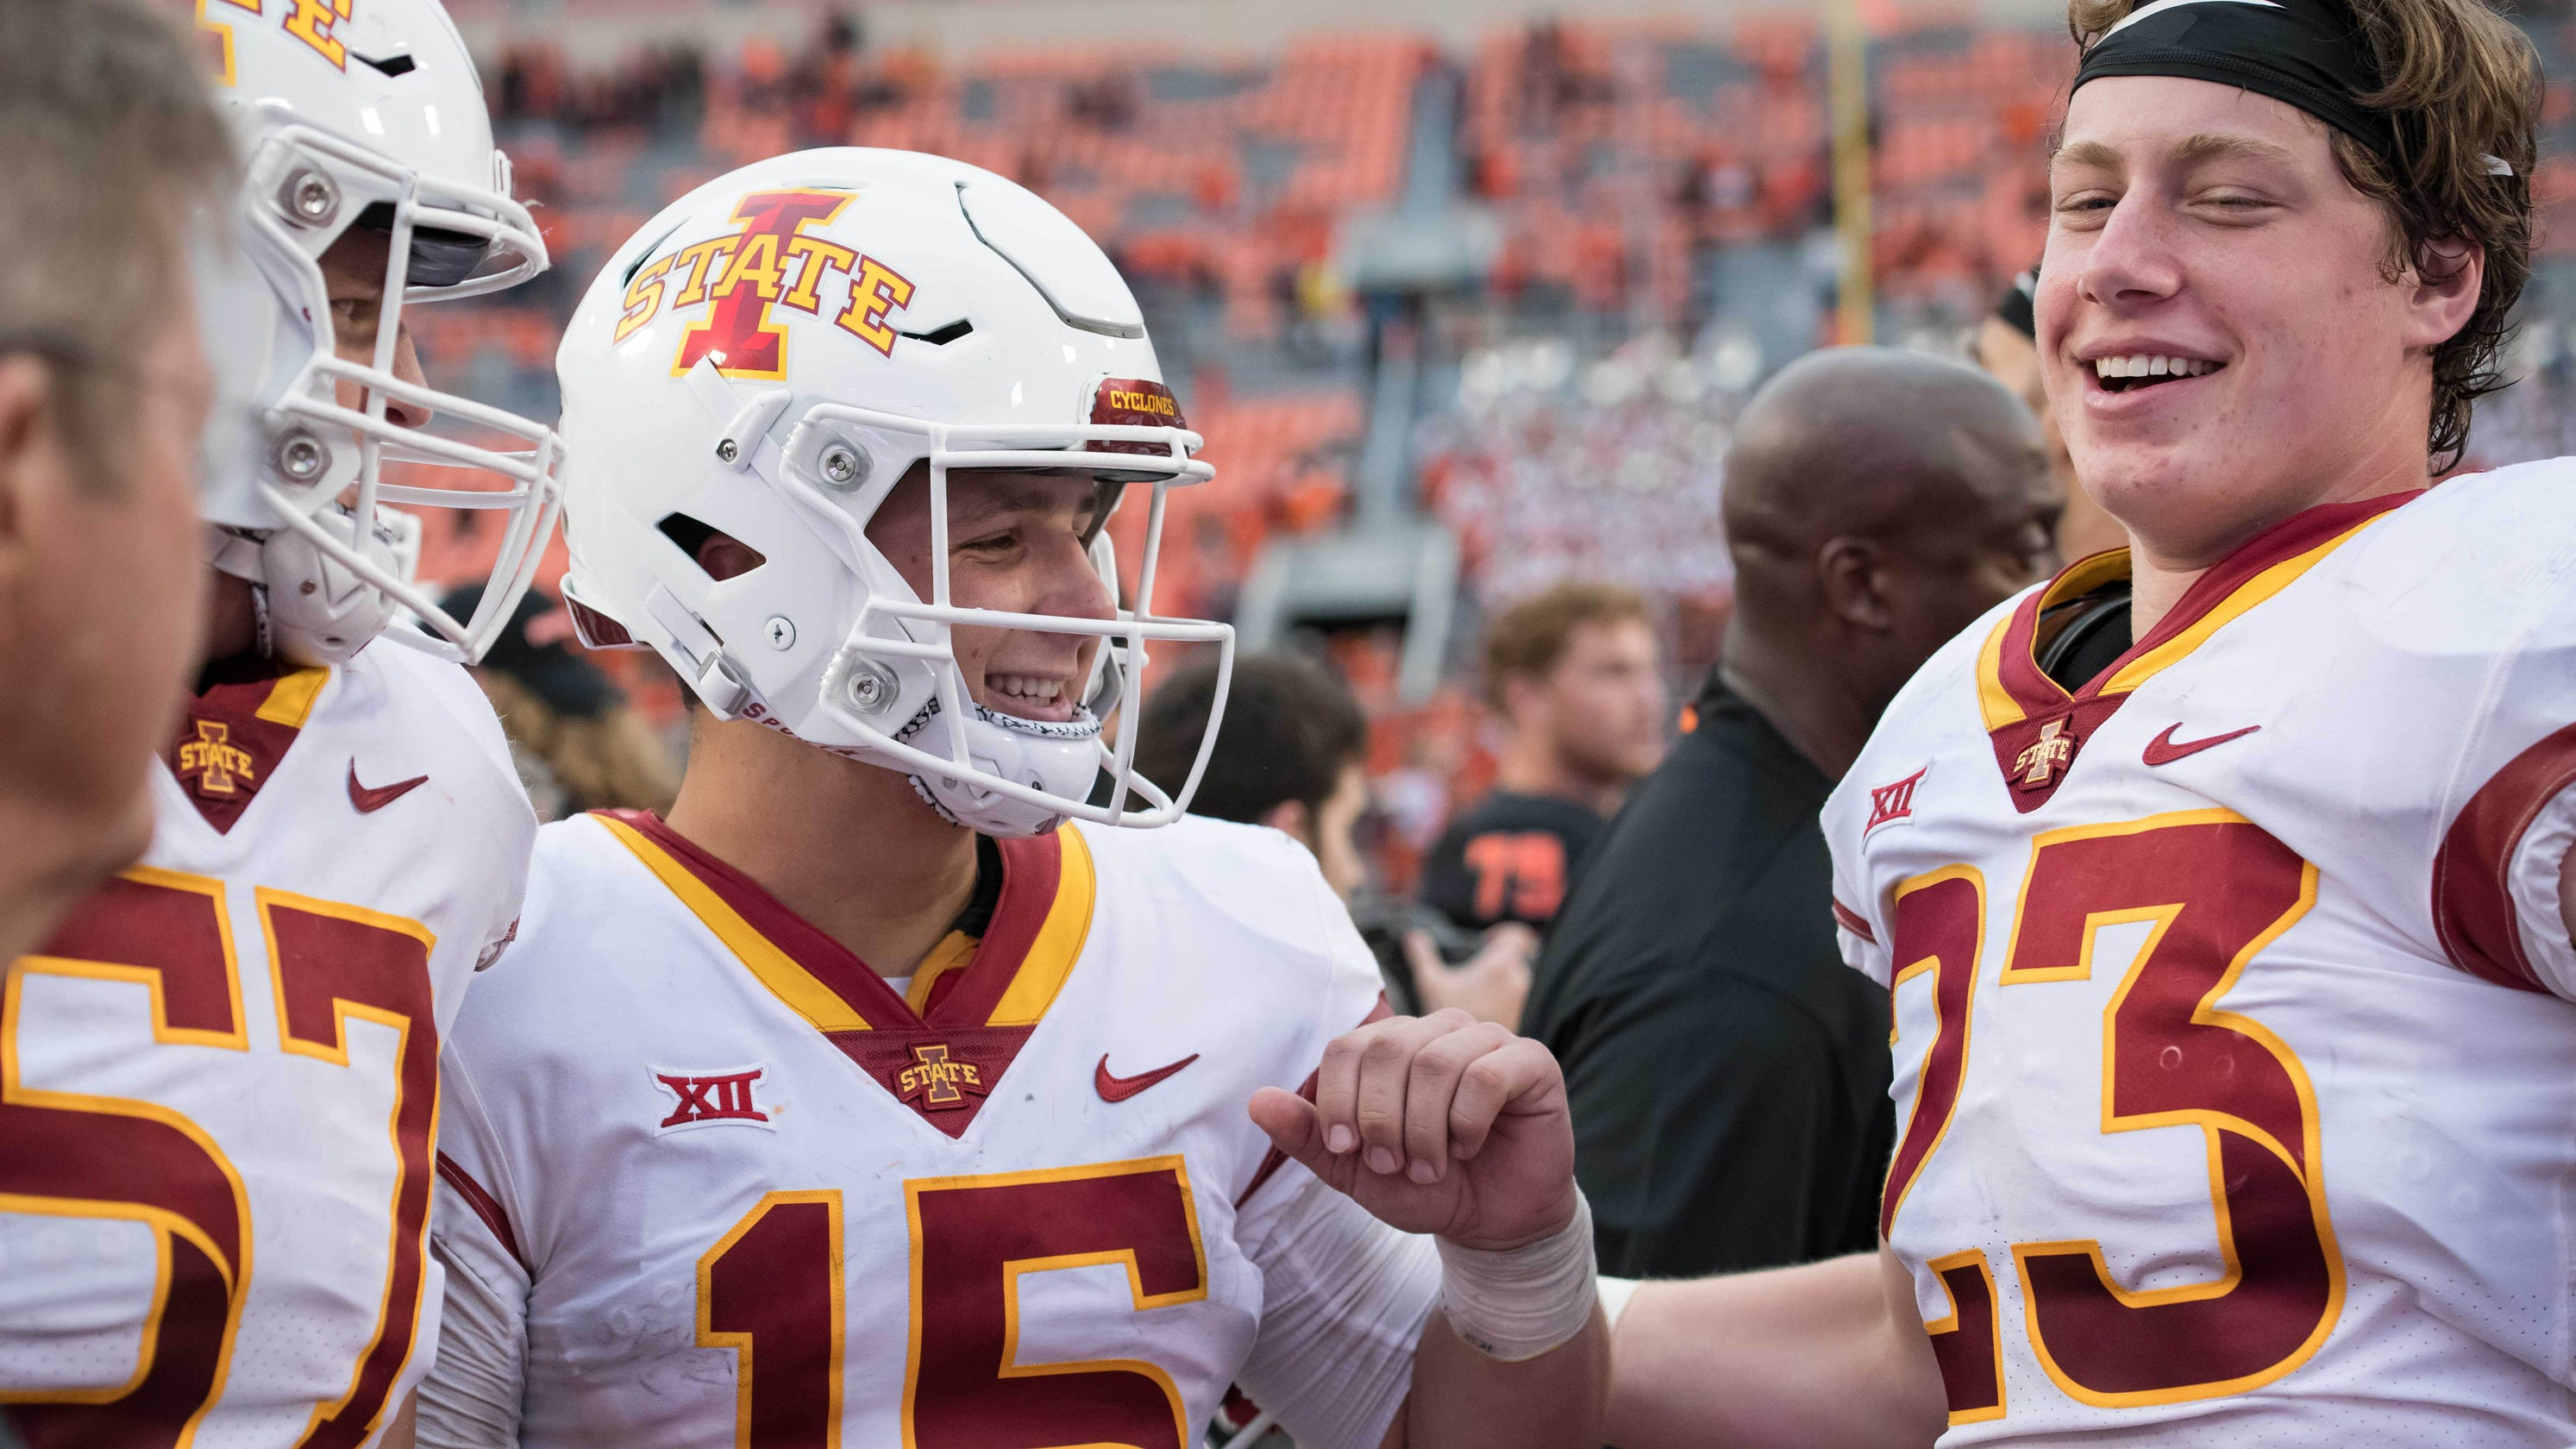 Peterson: Campbell has legitimized Iowa State football, regardless of outcome this weekend